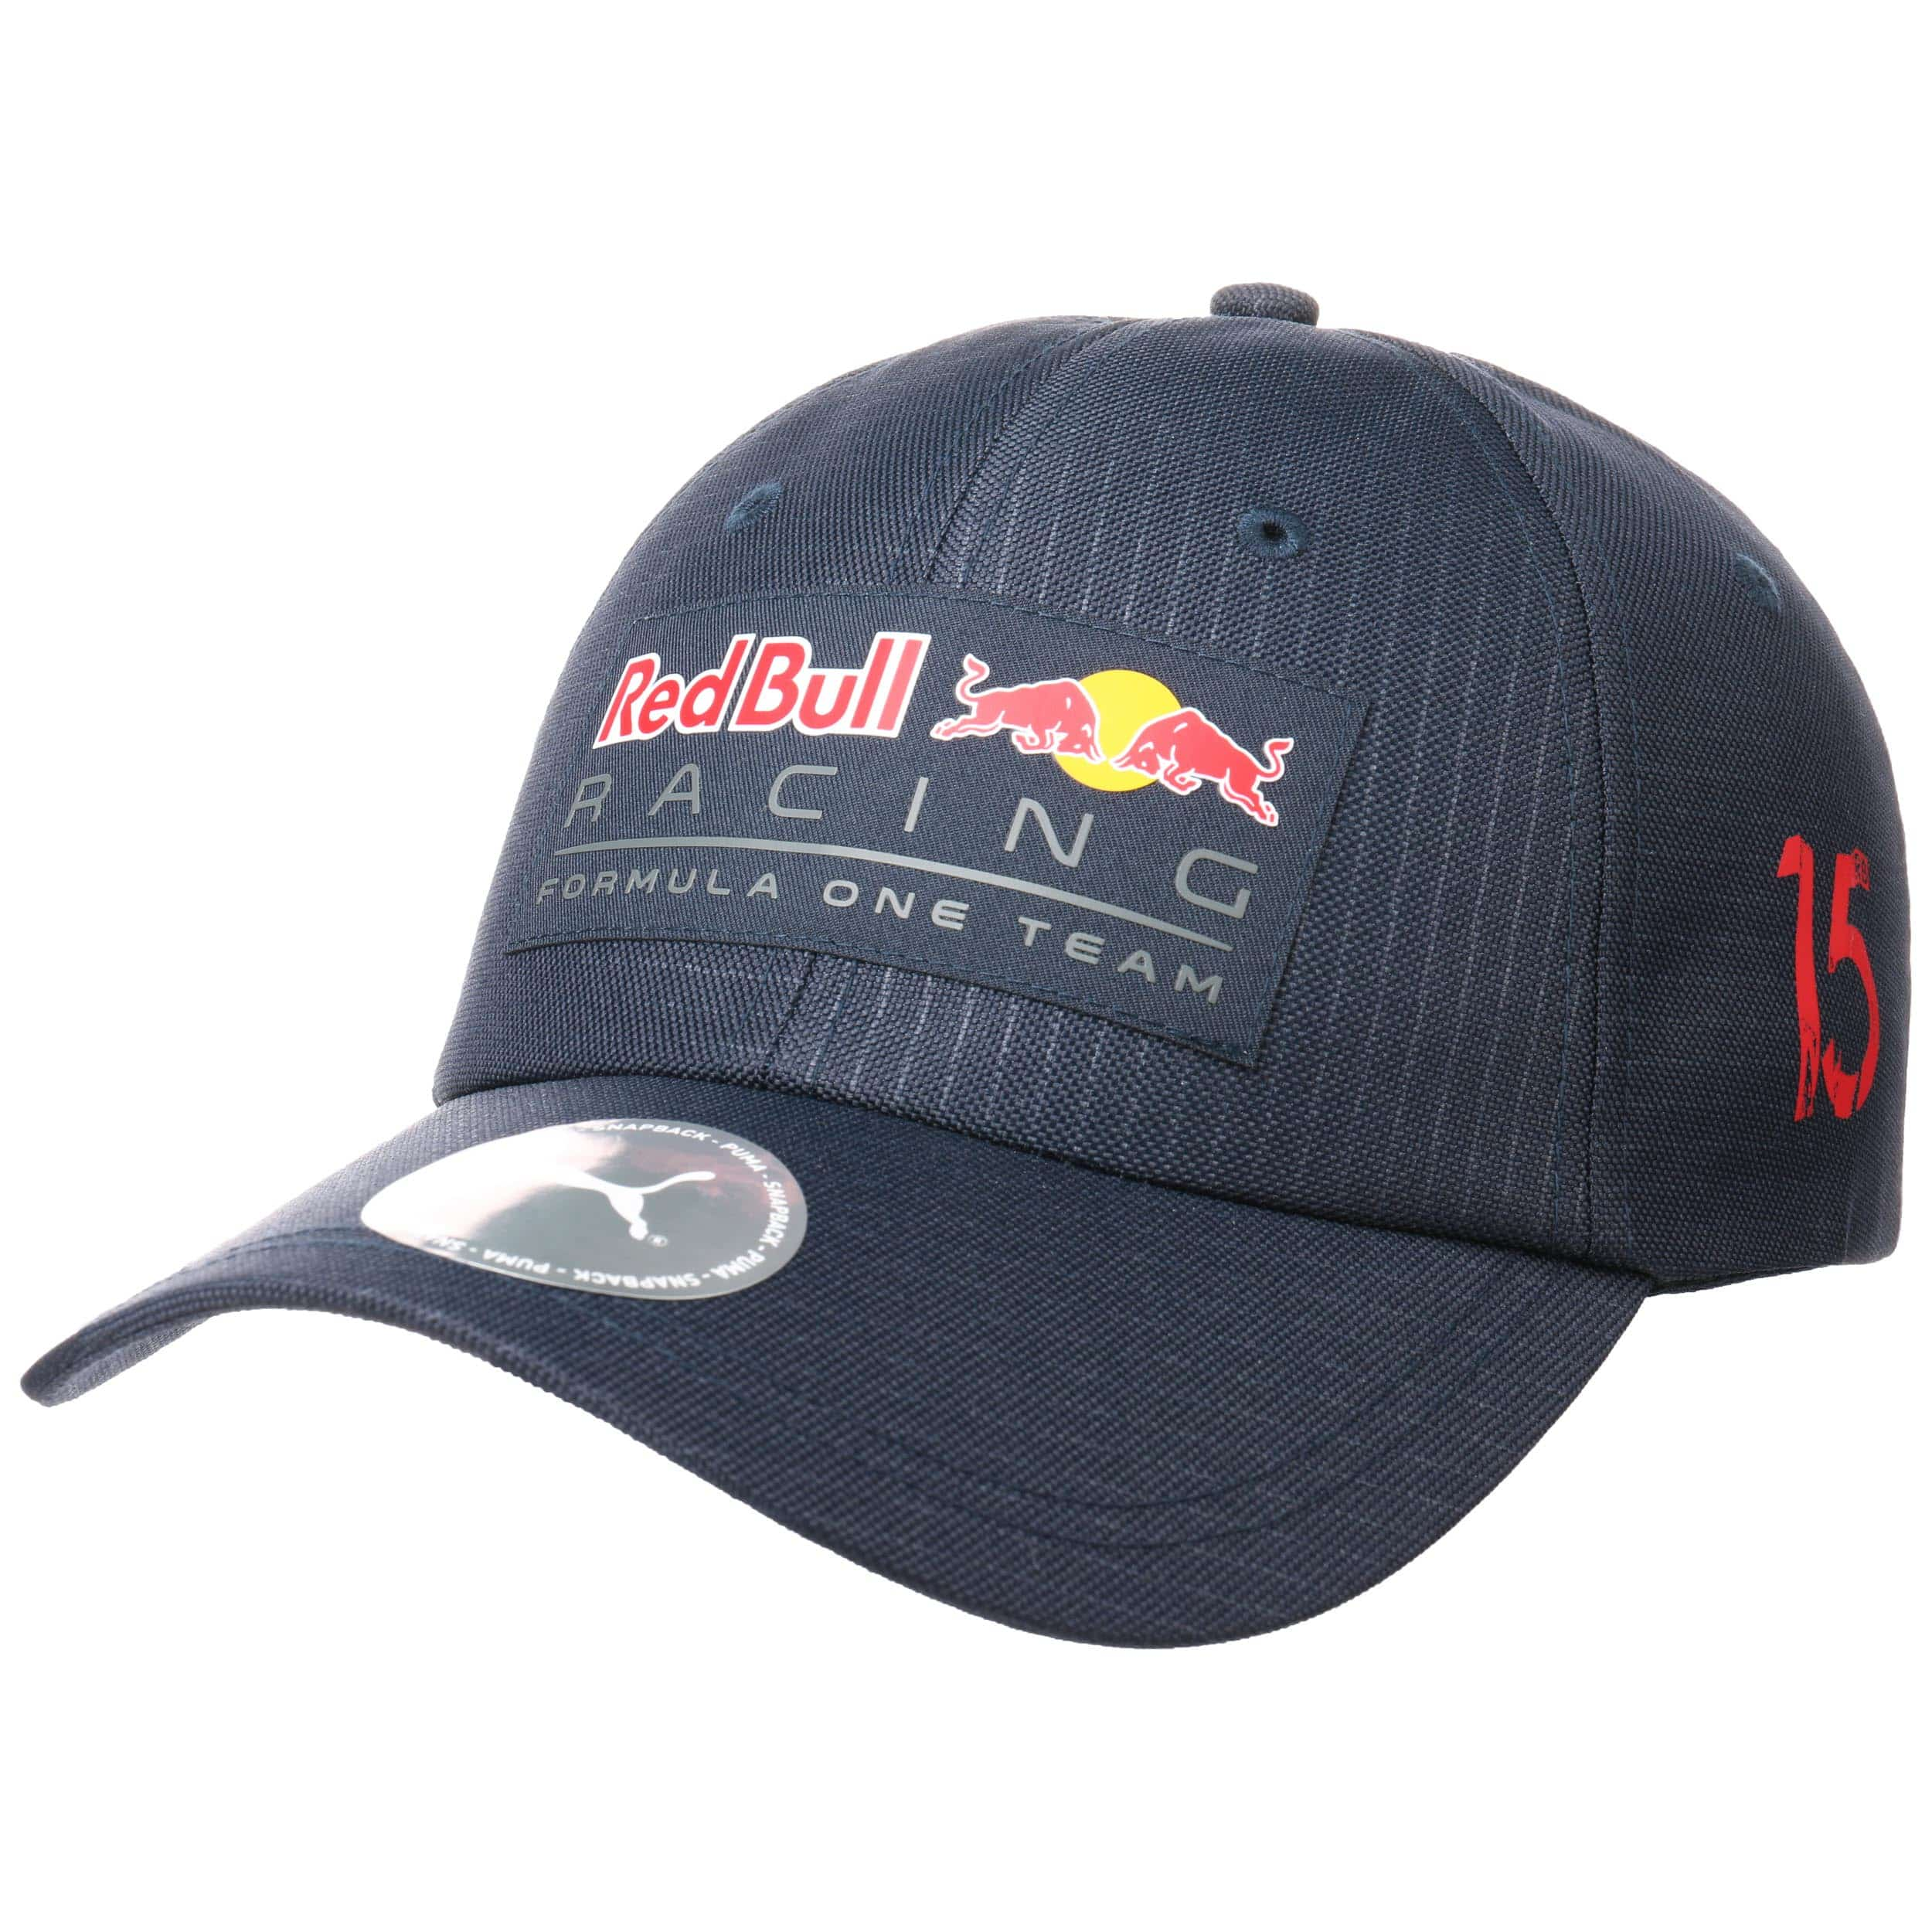 ... Gorra Red Bull Racing Lifestyle Curved by PUMA - azul oscuro 7 0b37071f9f2